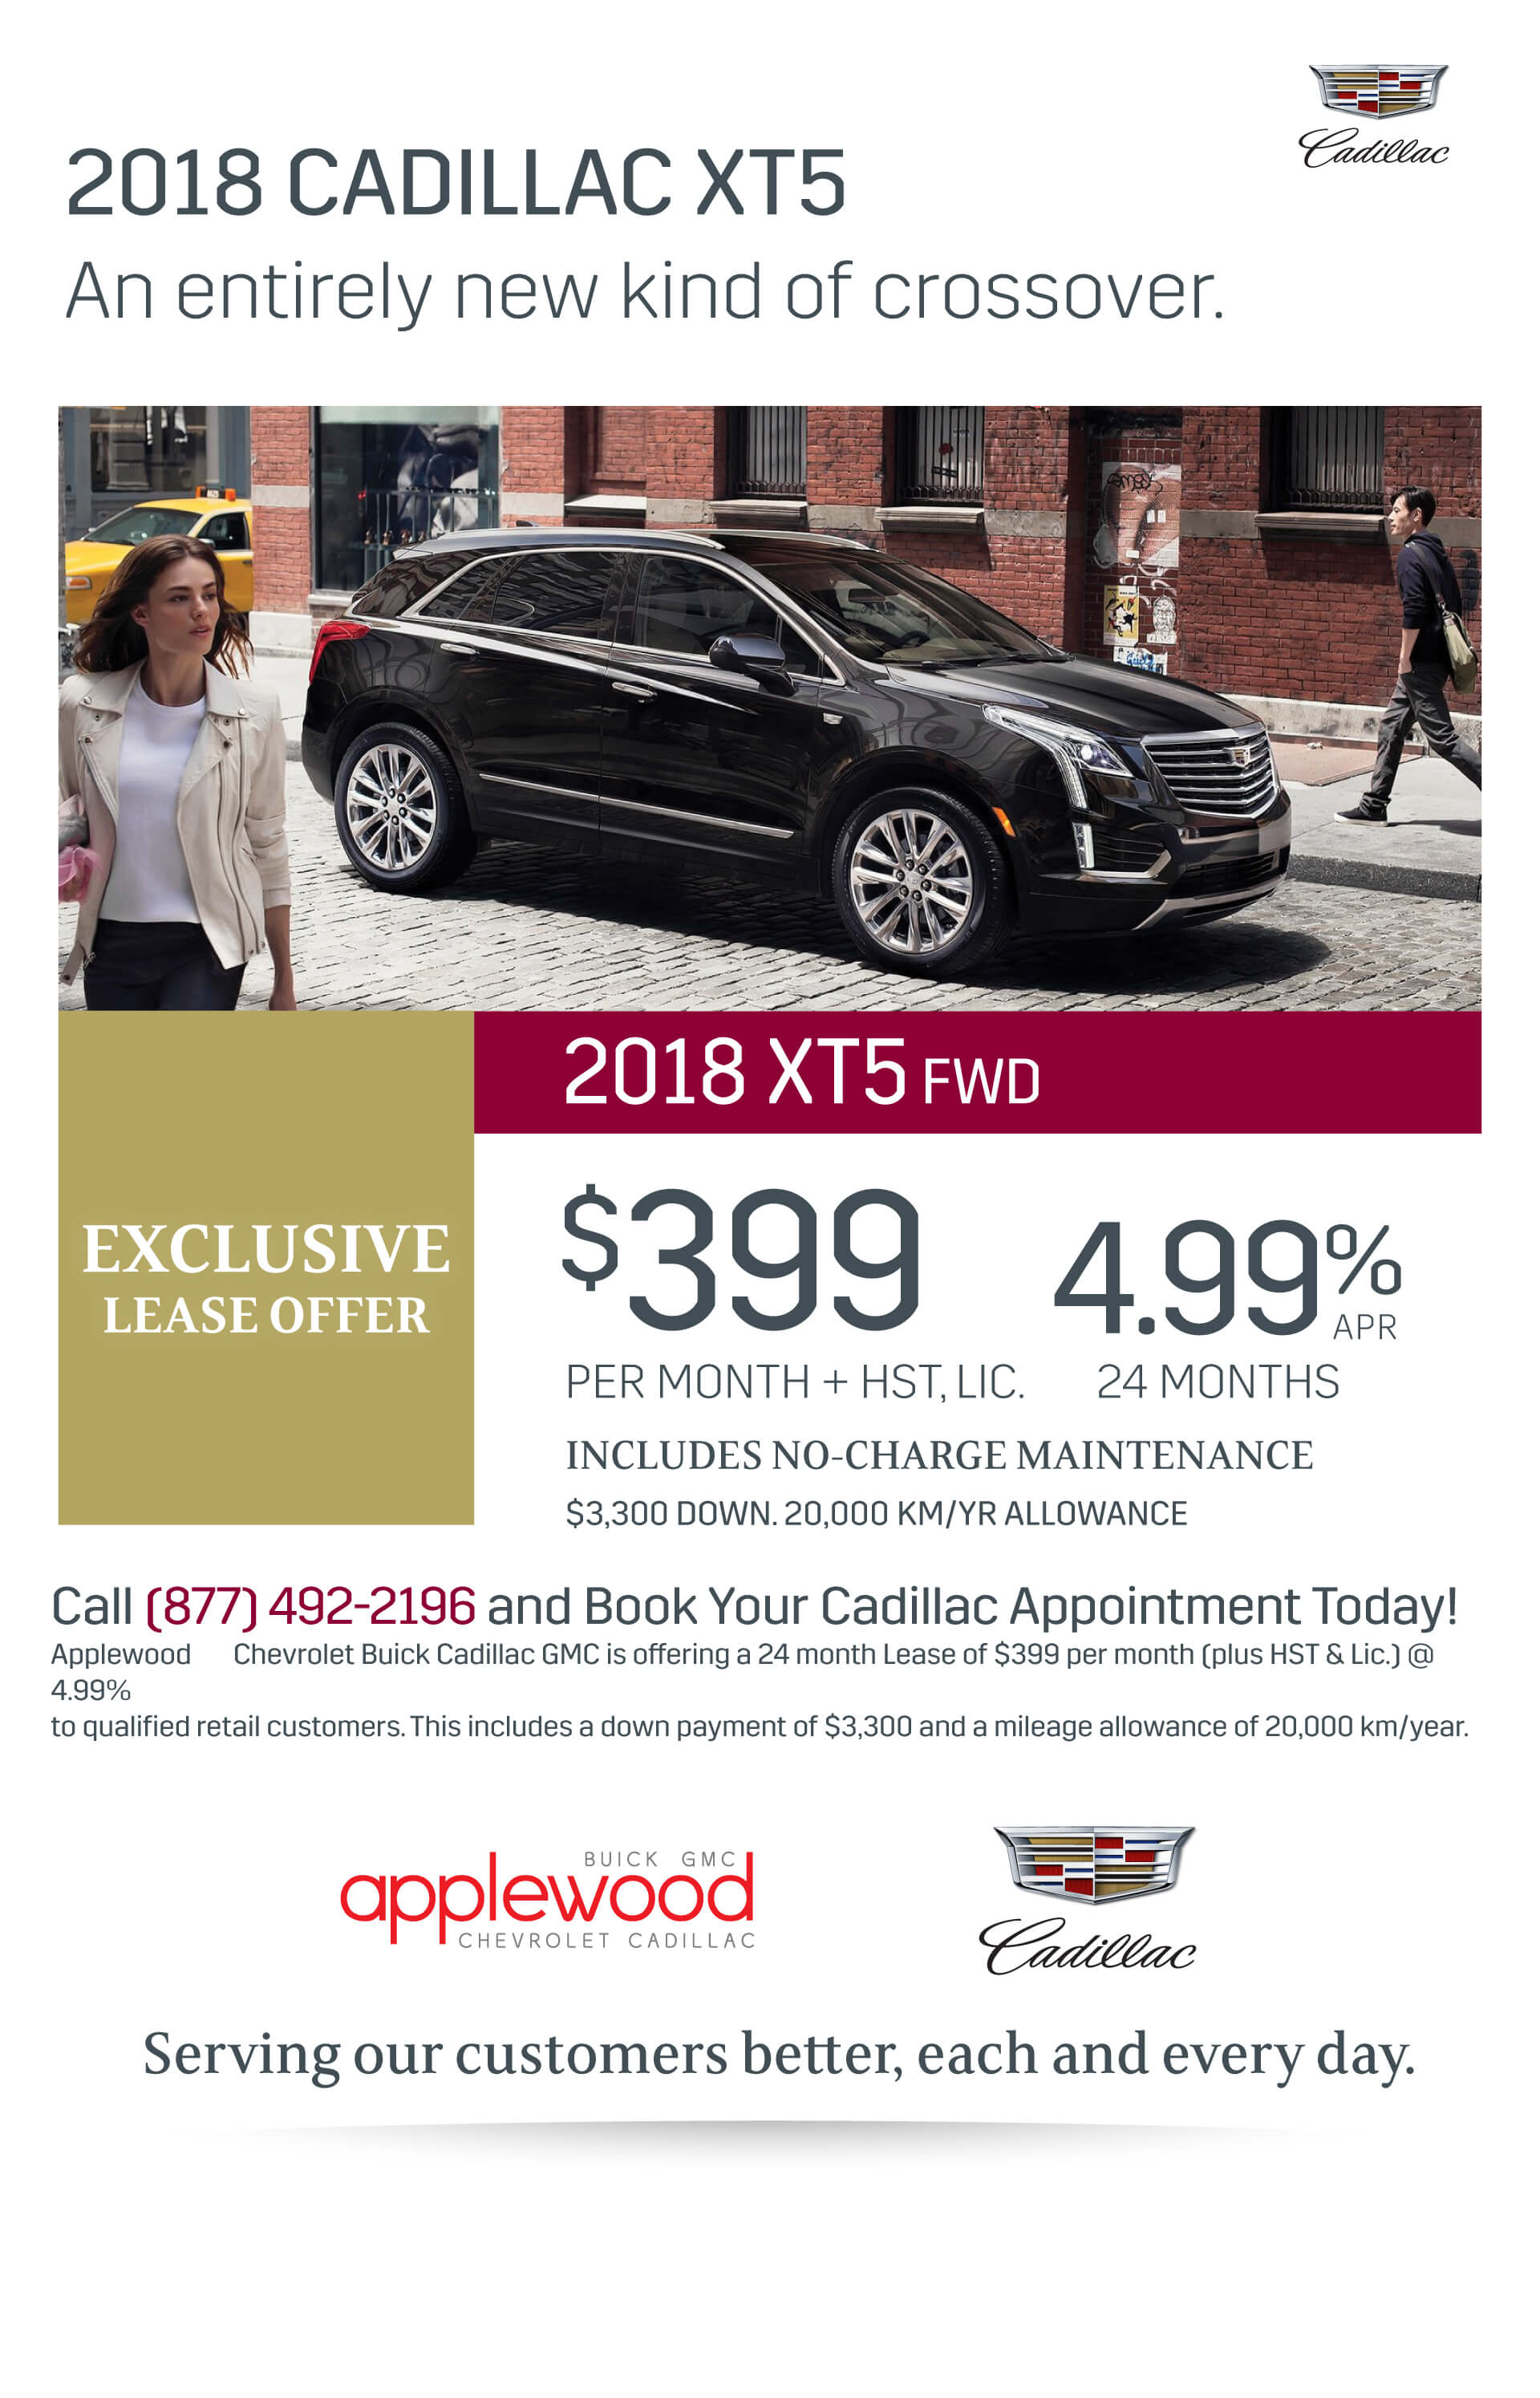 Cadillac XT5 Exclusive Lease Offer